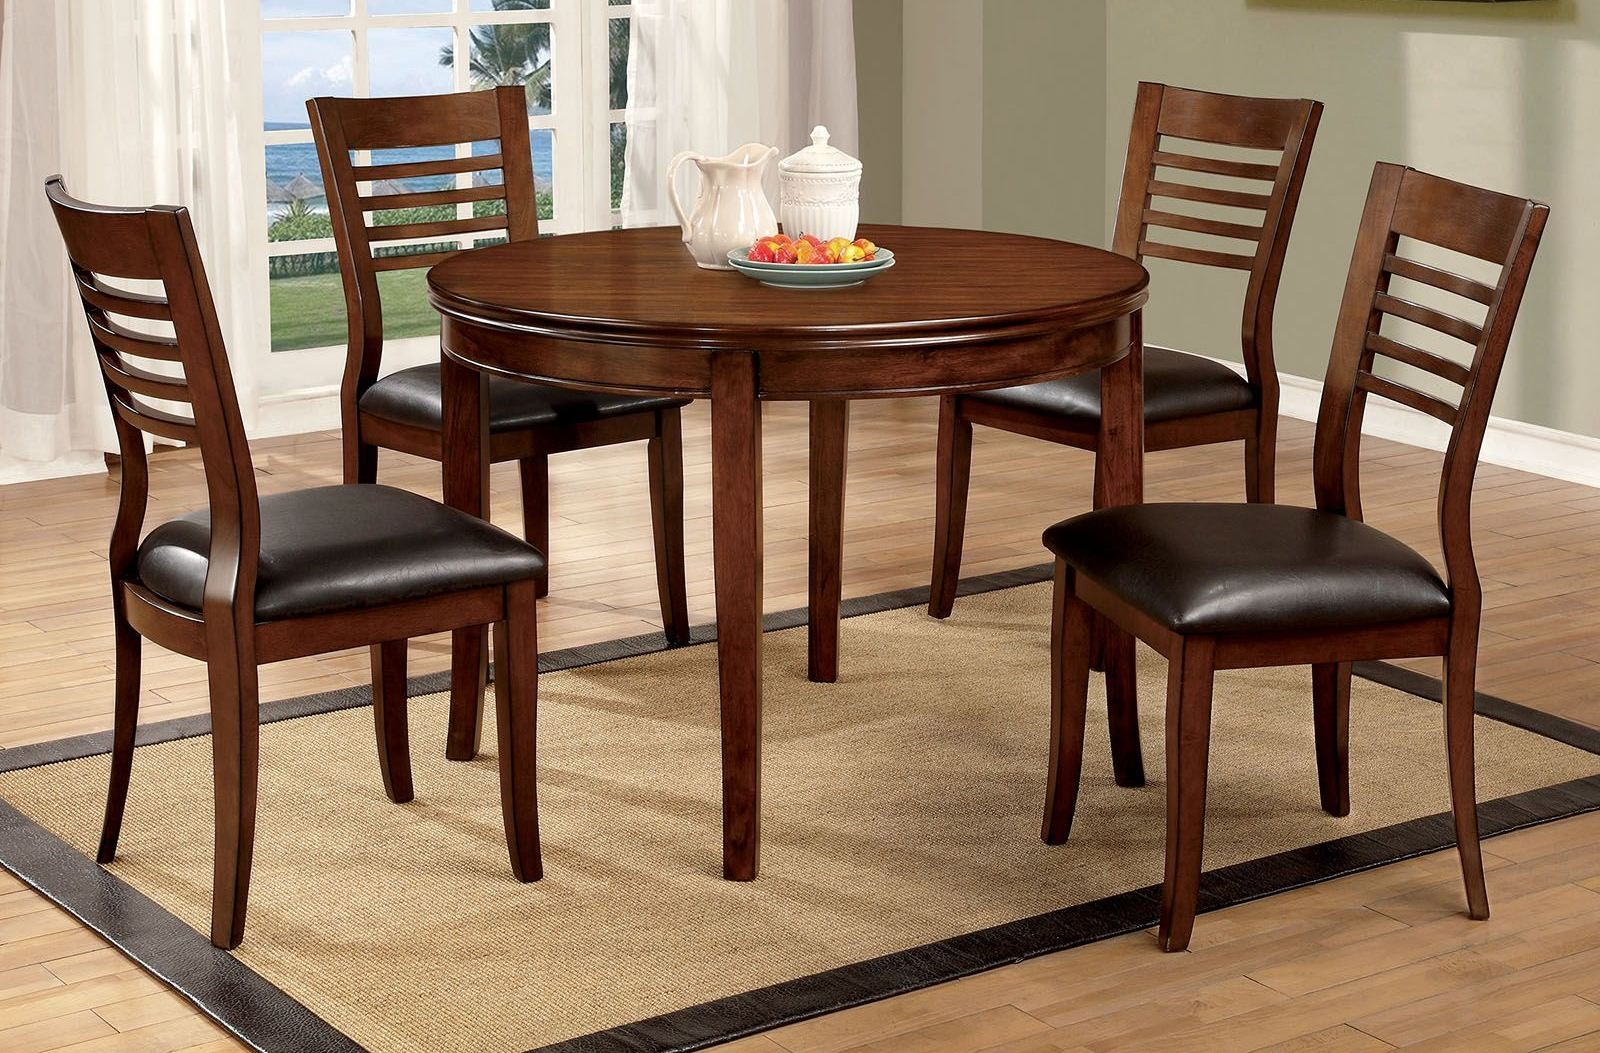 Dwight I Gray 48 Round Dining Room Set CM3988RT48 Furniture of America